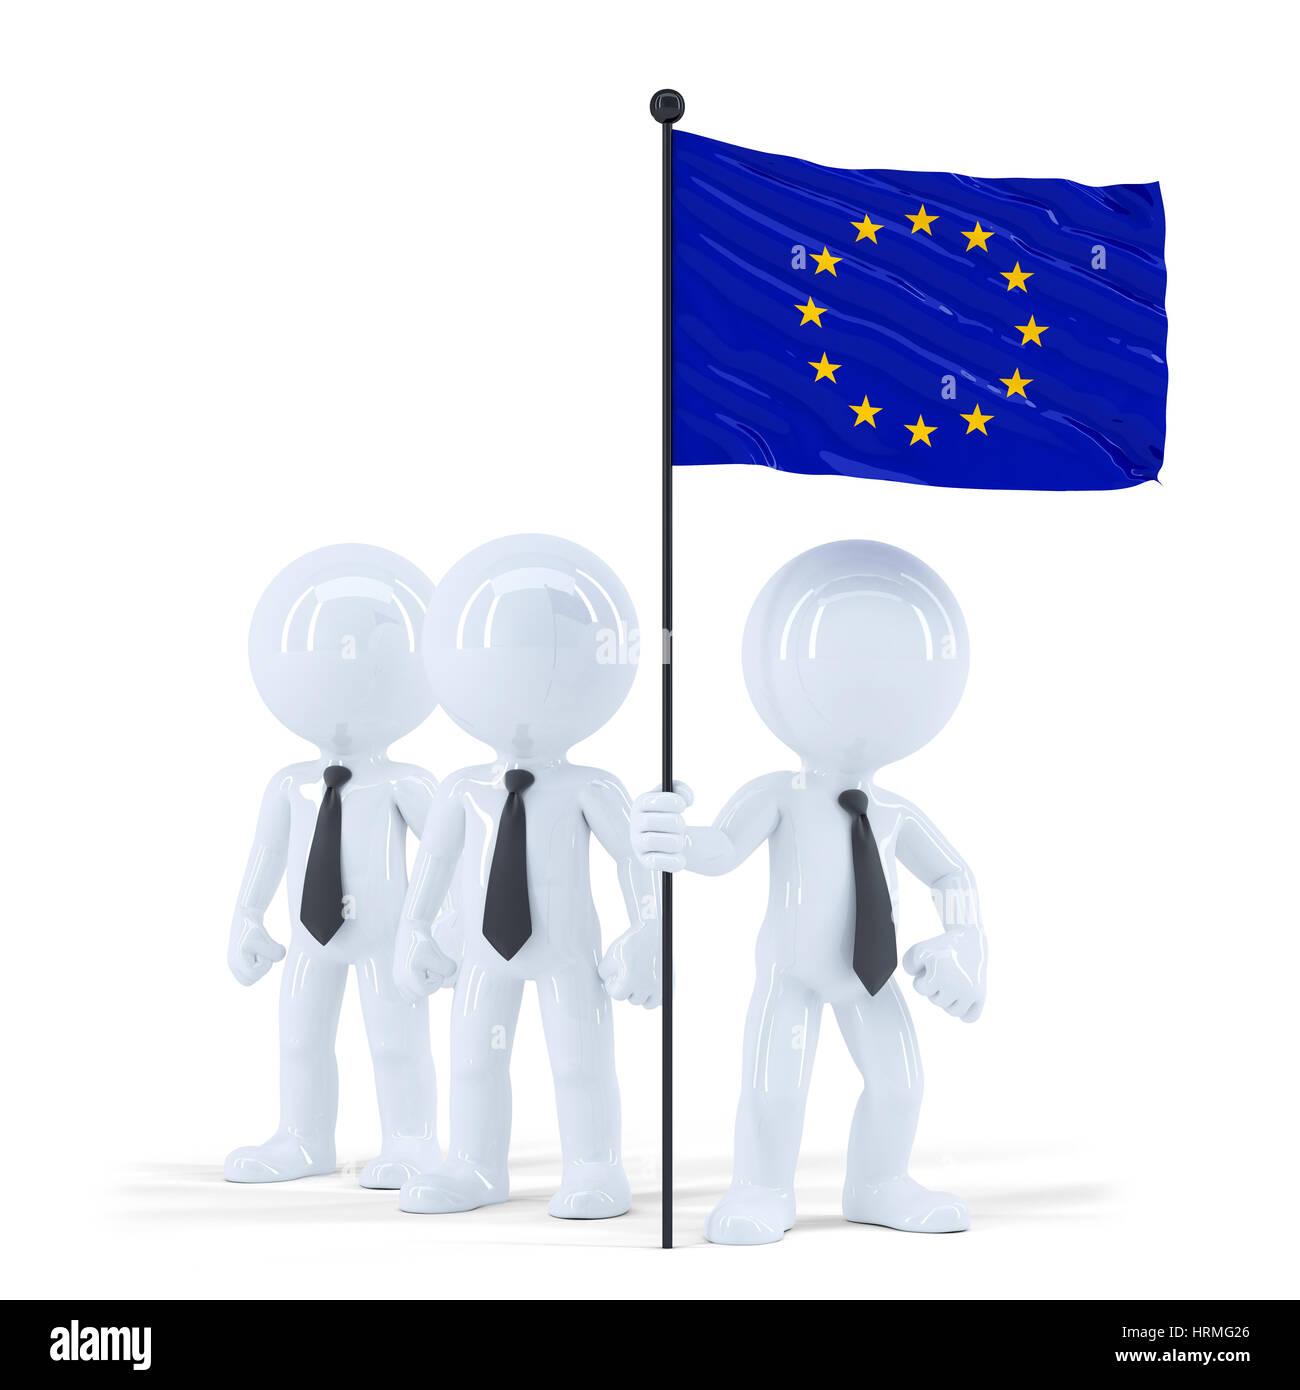 Business team holding flag of European Union. Isolated. Contains clipping path - Stock Image